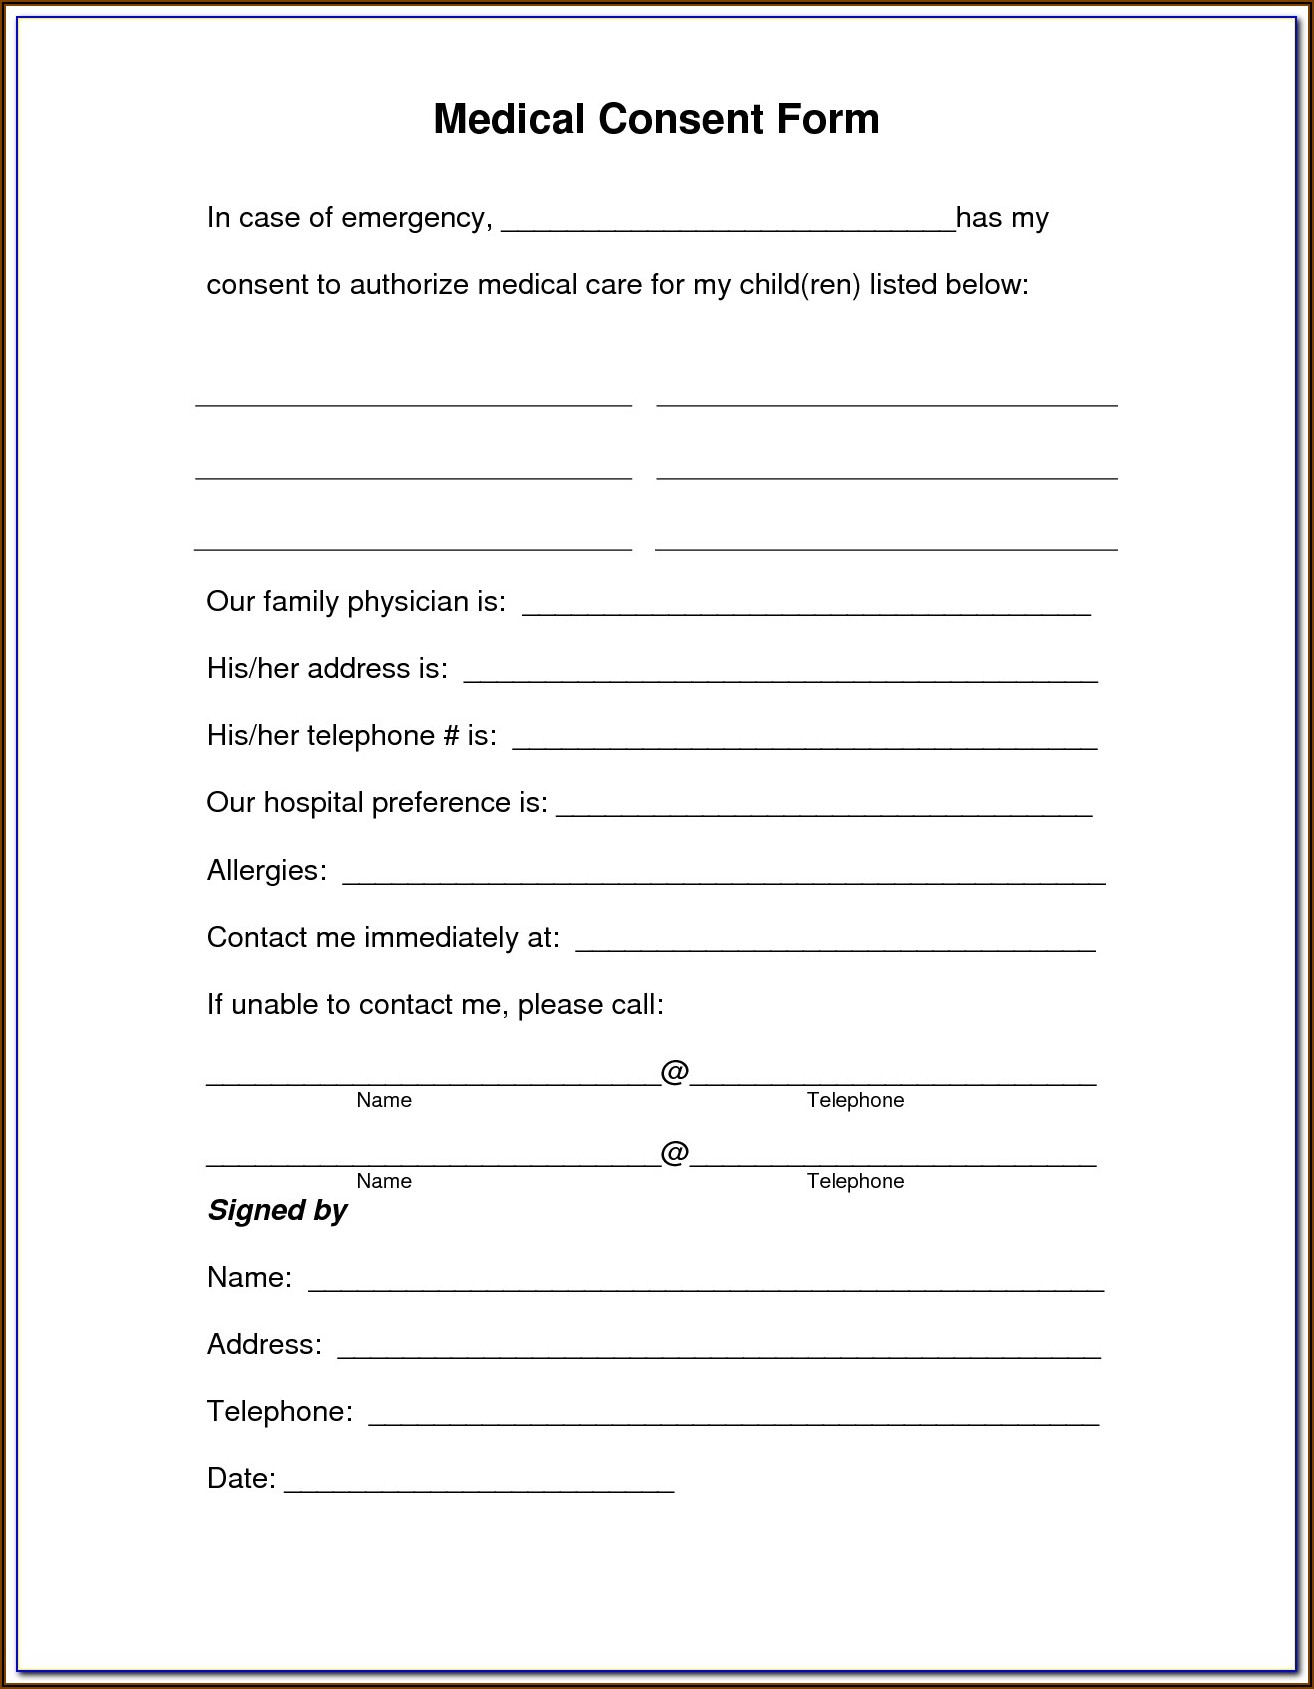 United Health Care Consent Form